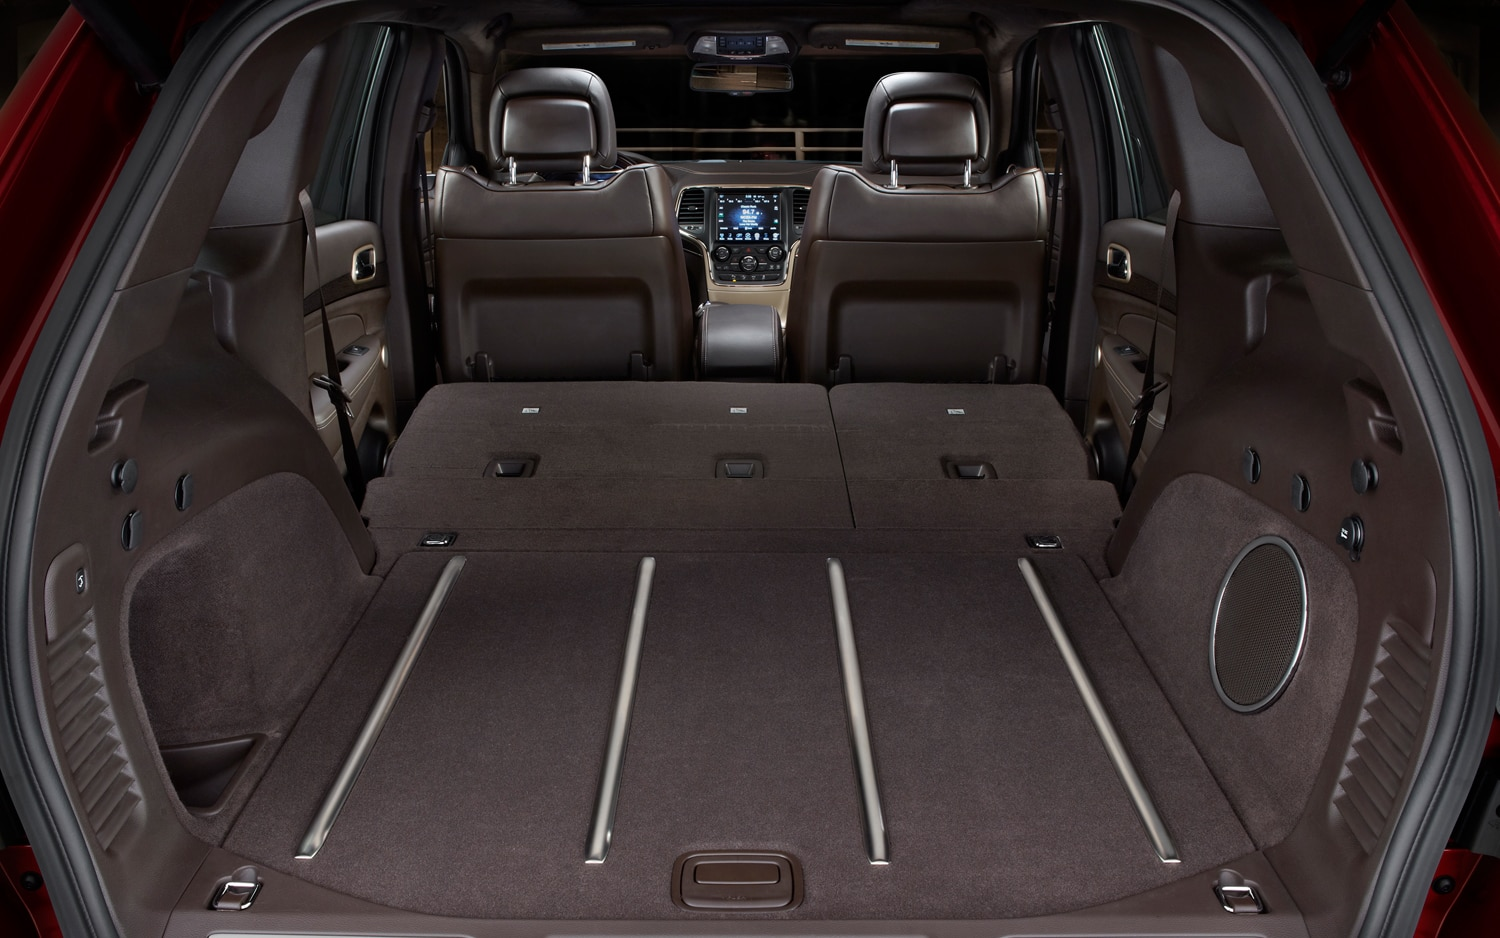 2014 Jeep Grand Cherokee Summit Rear Interior Cargo Space 2